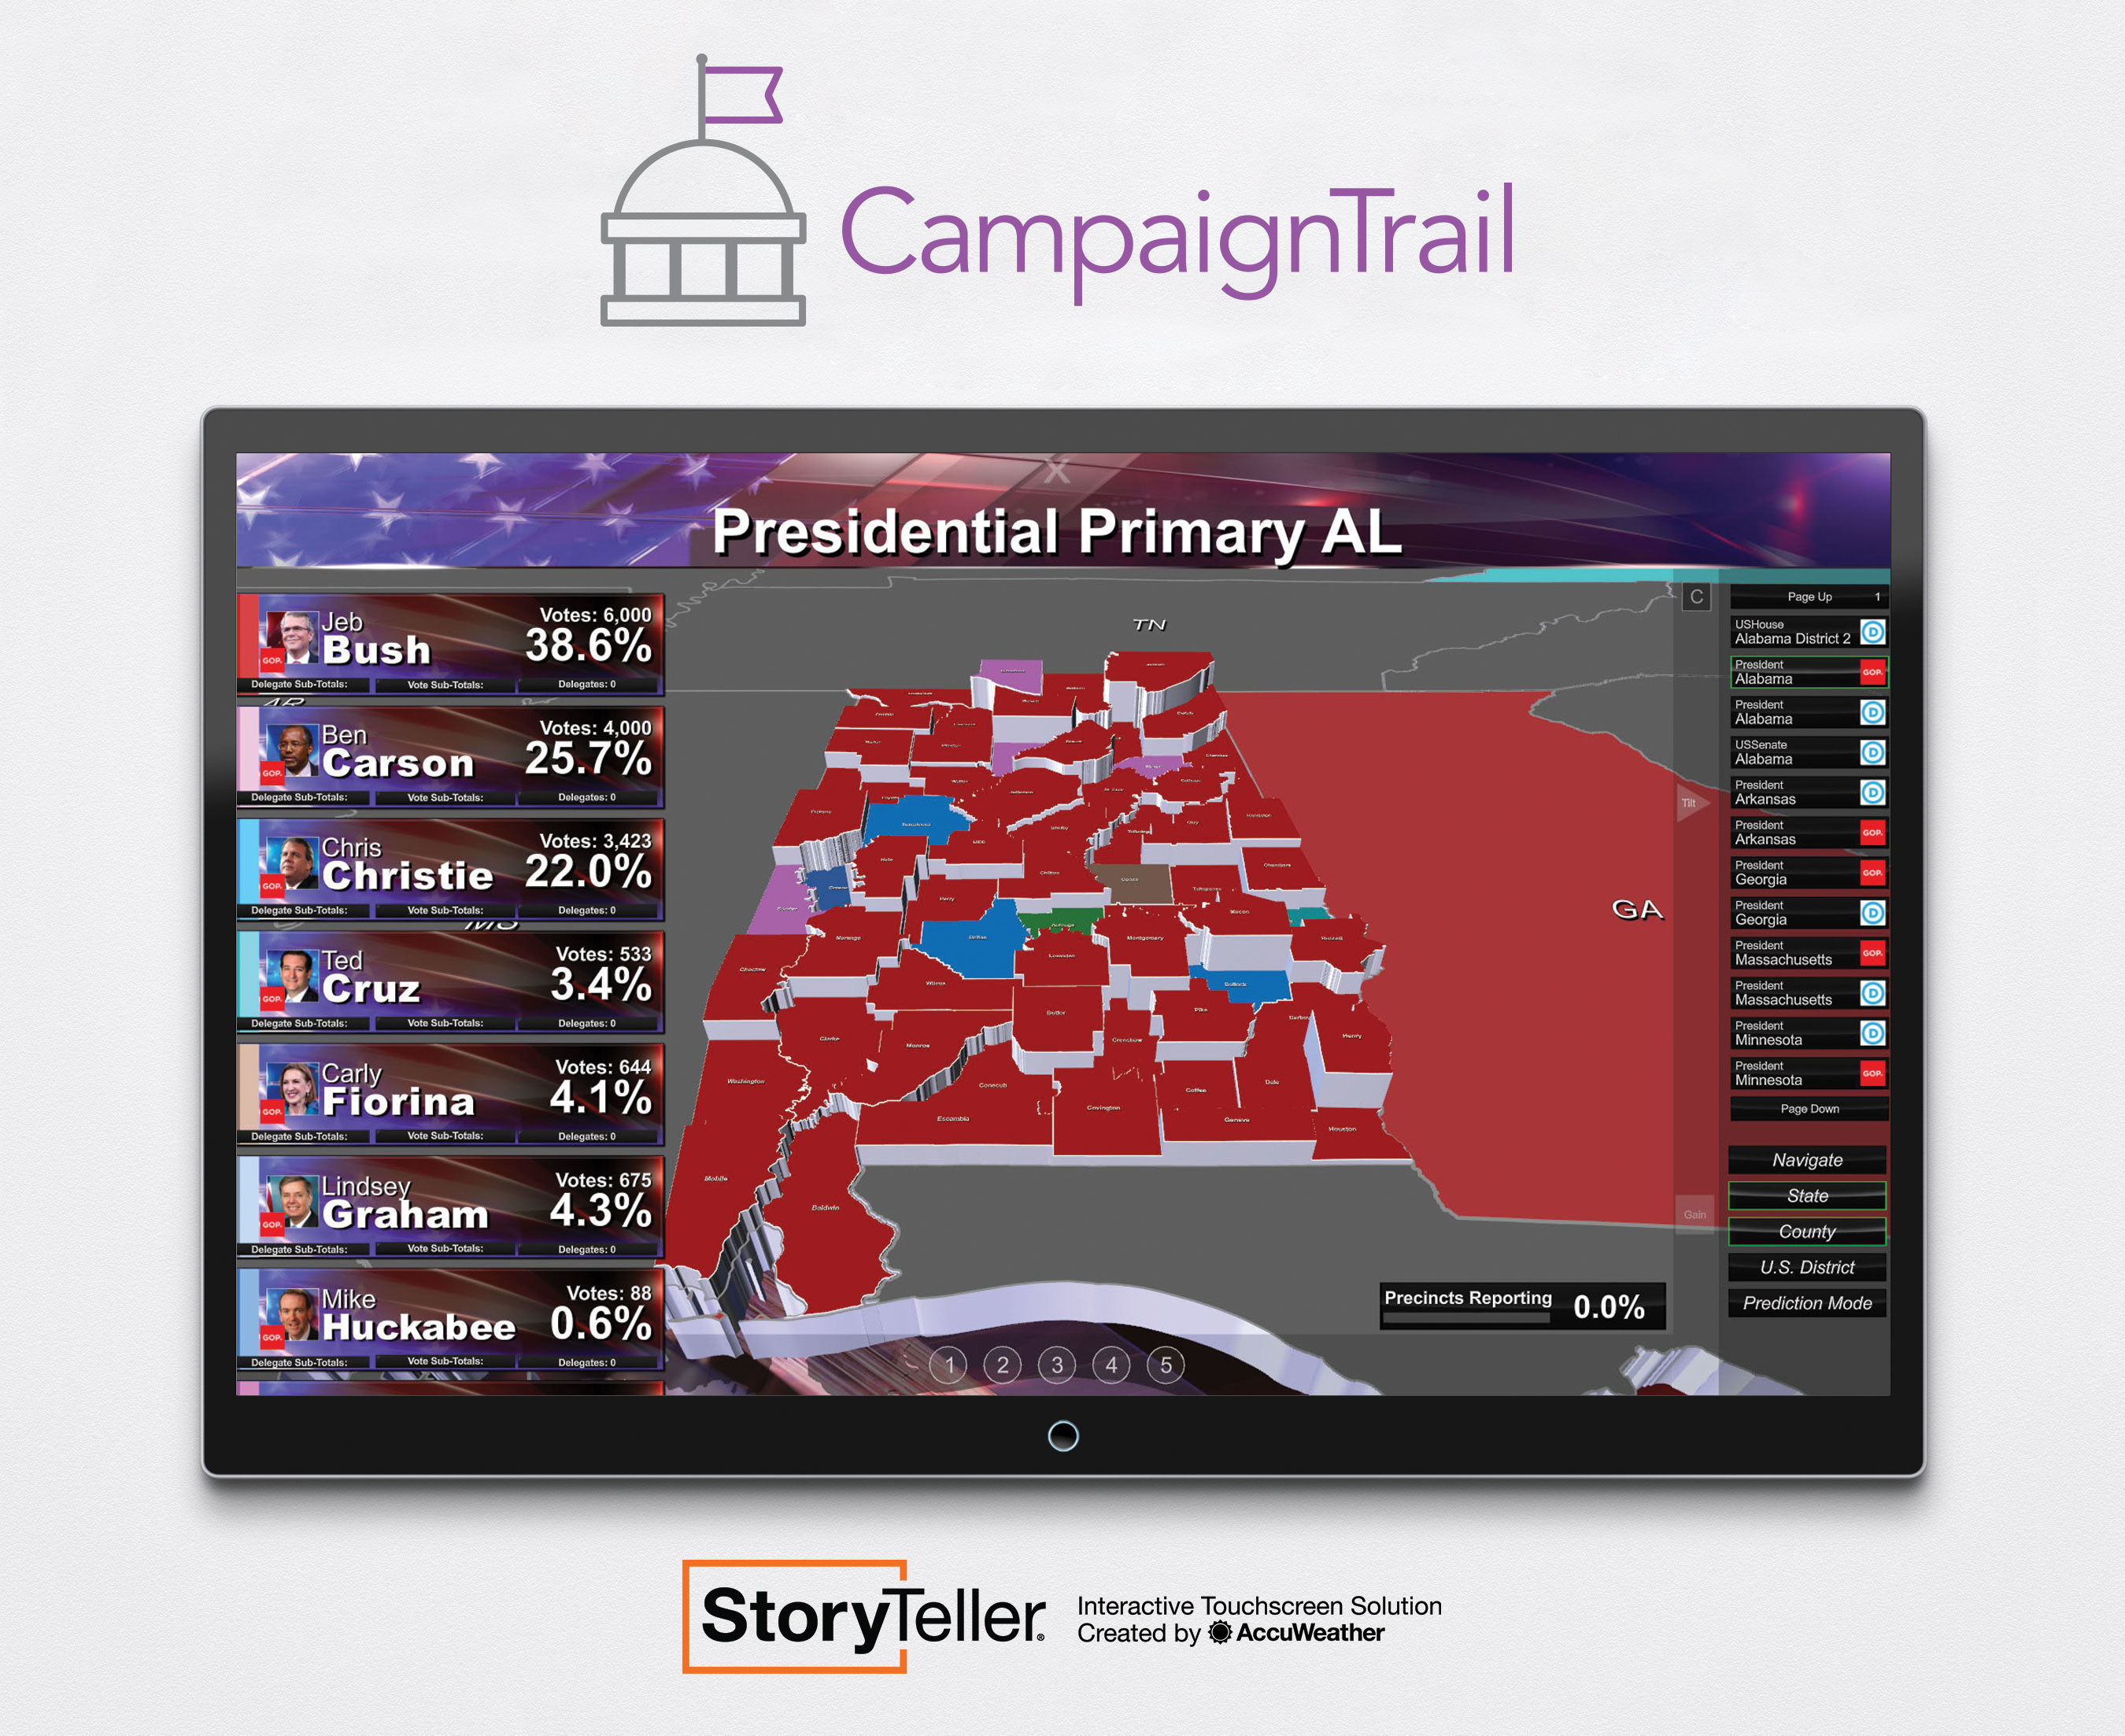 New StoryTeller CampaignTrail by AccuWeather